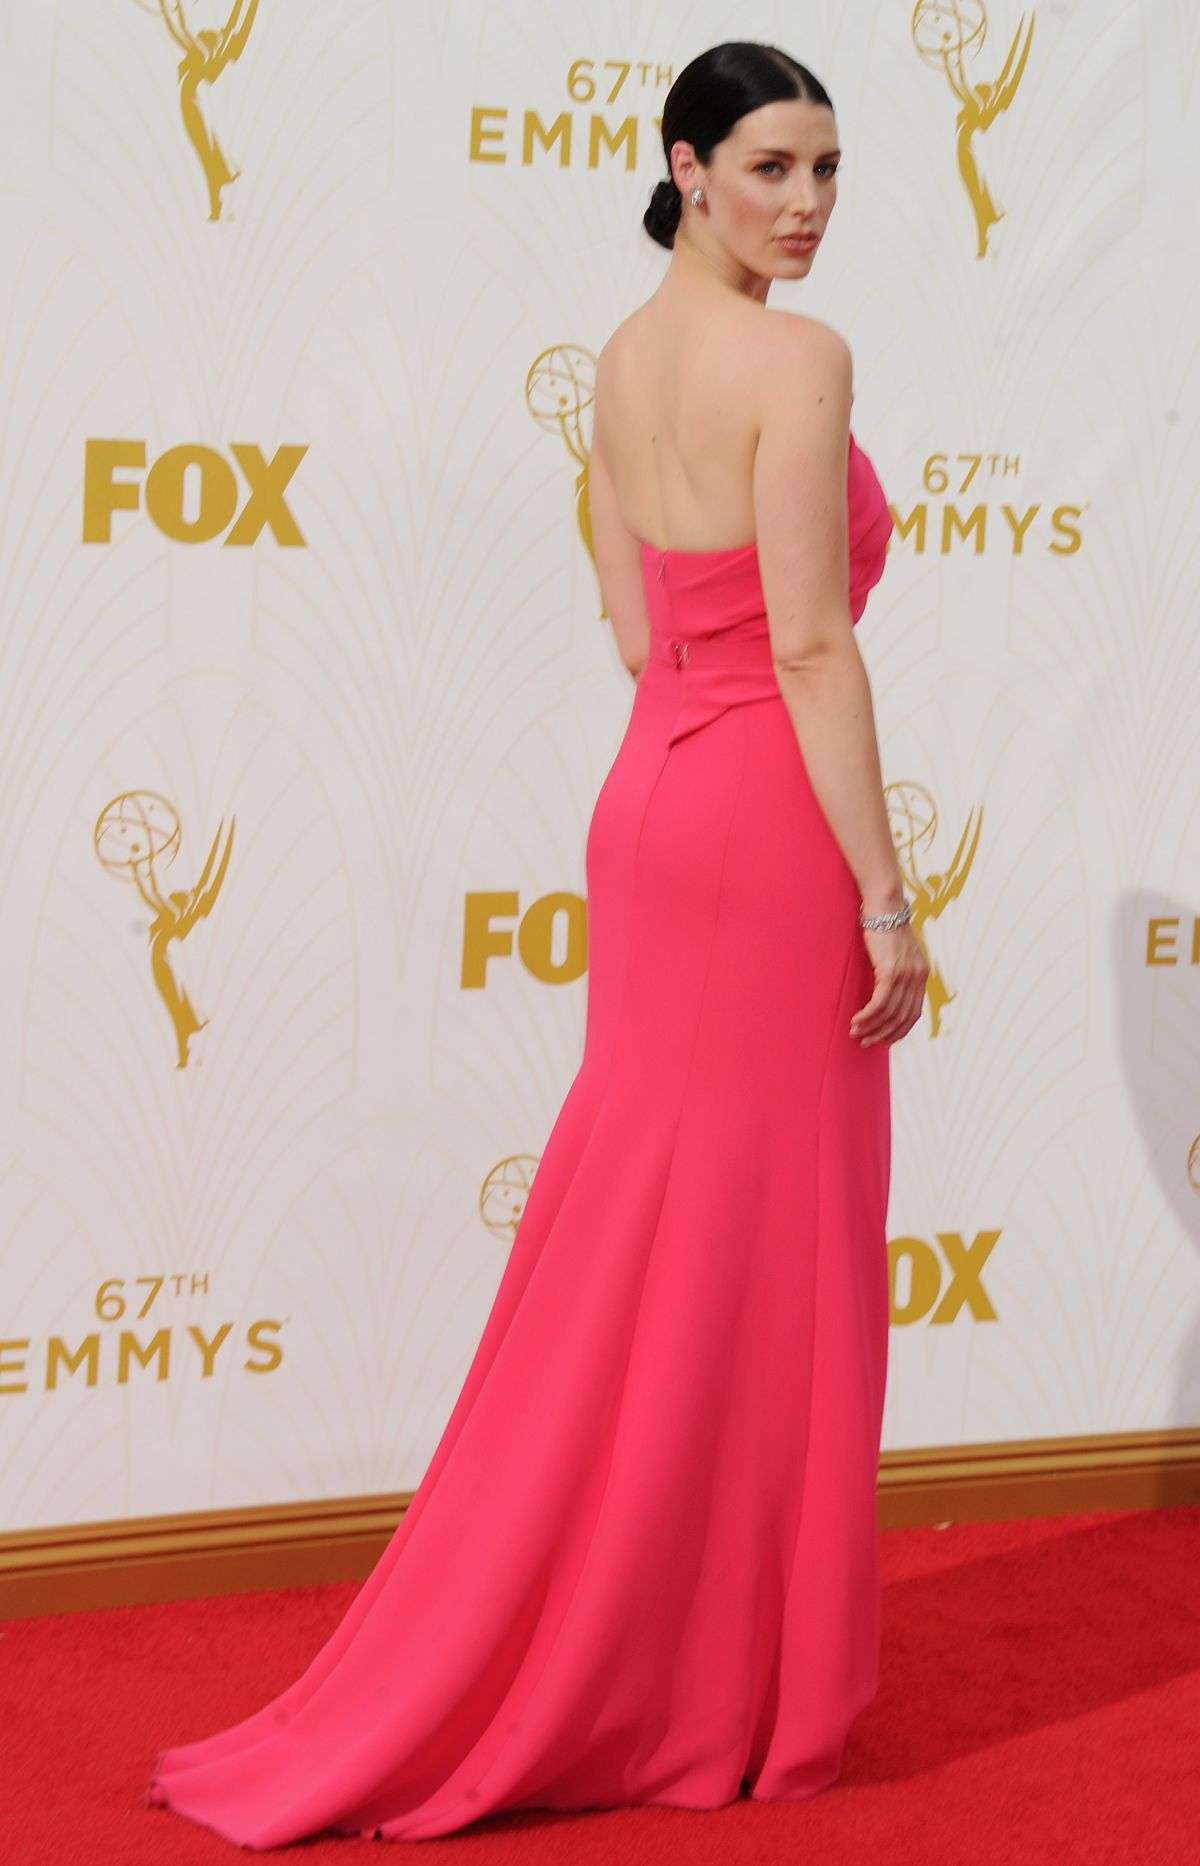 JESSICA PARE at 2015 Emmy Awards in Los Angeles 09/20/2015